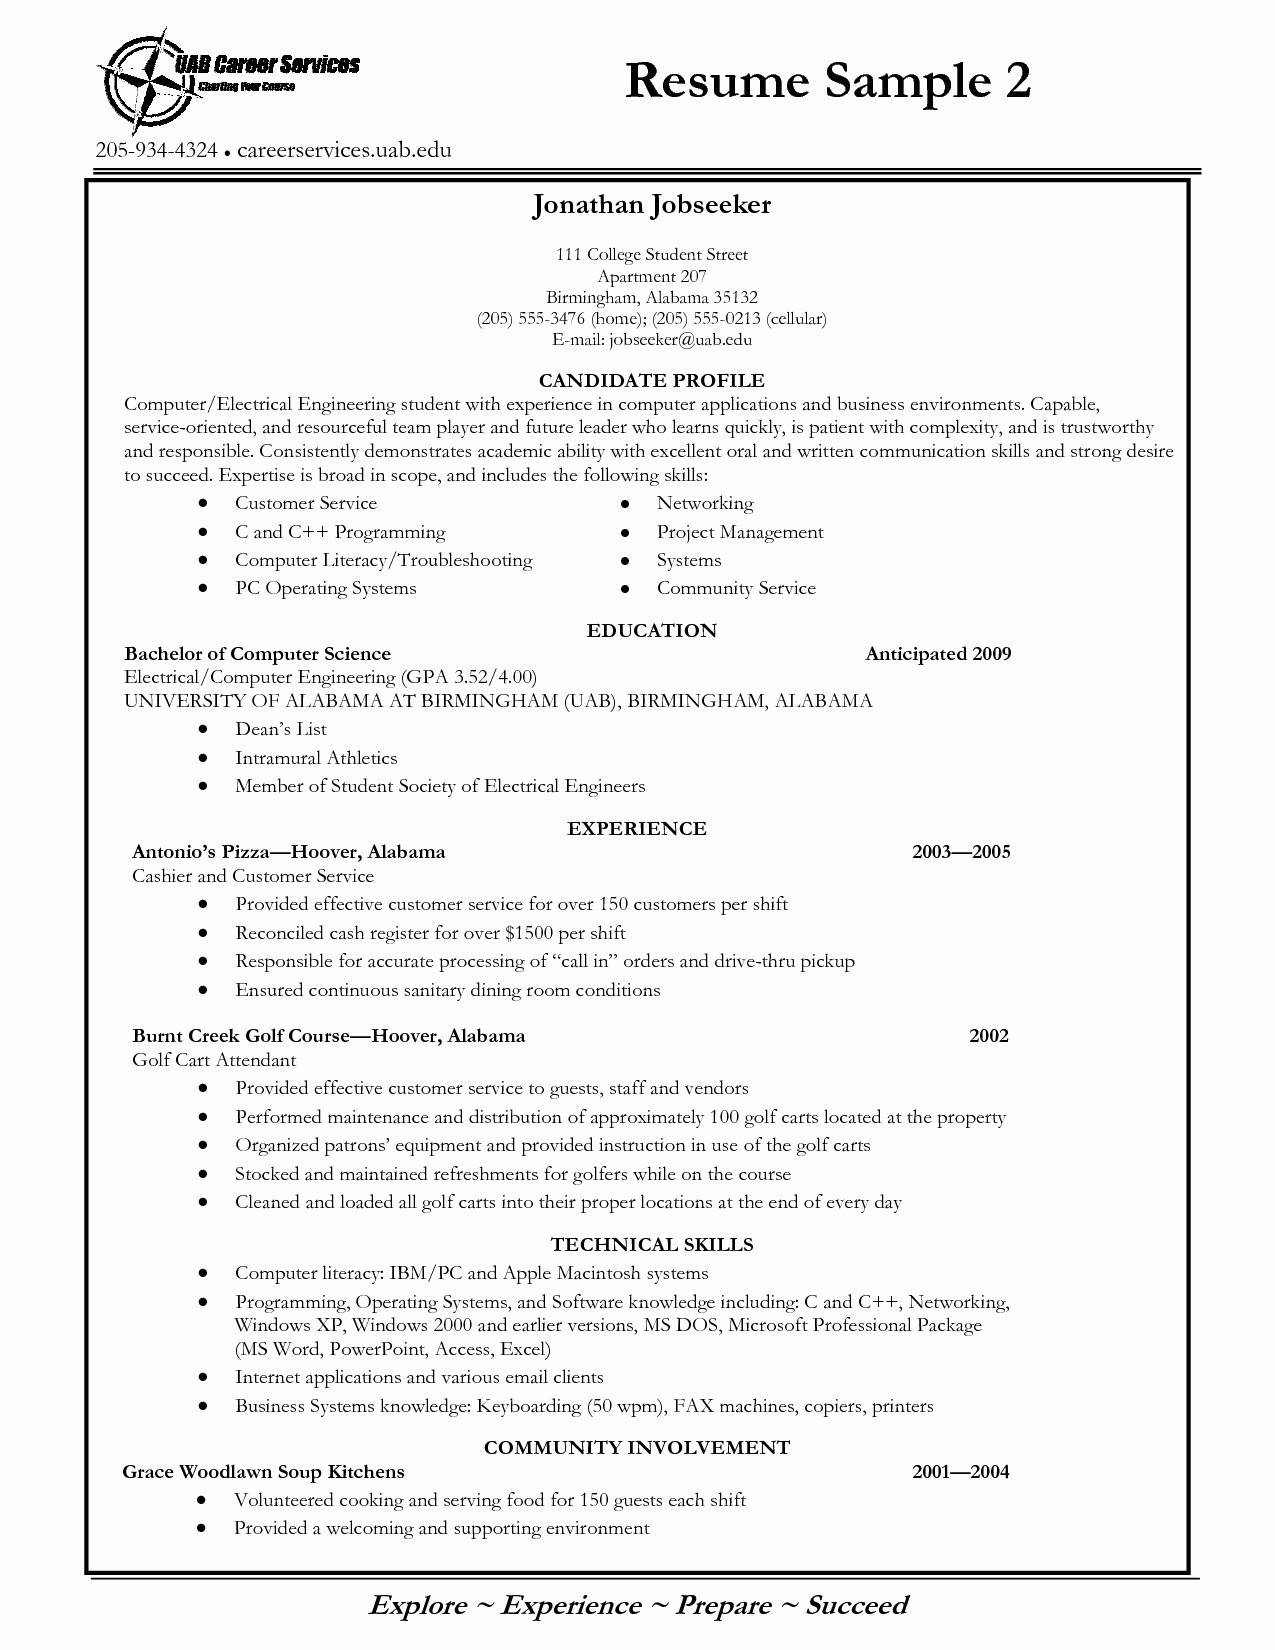 Resume Templates for College Students - Fresh Sample Resume Templates for College Students